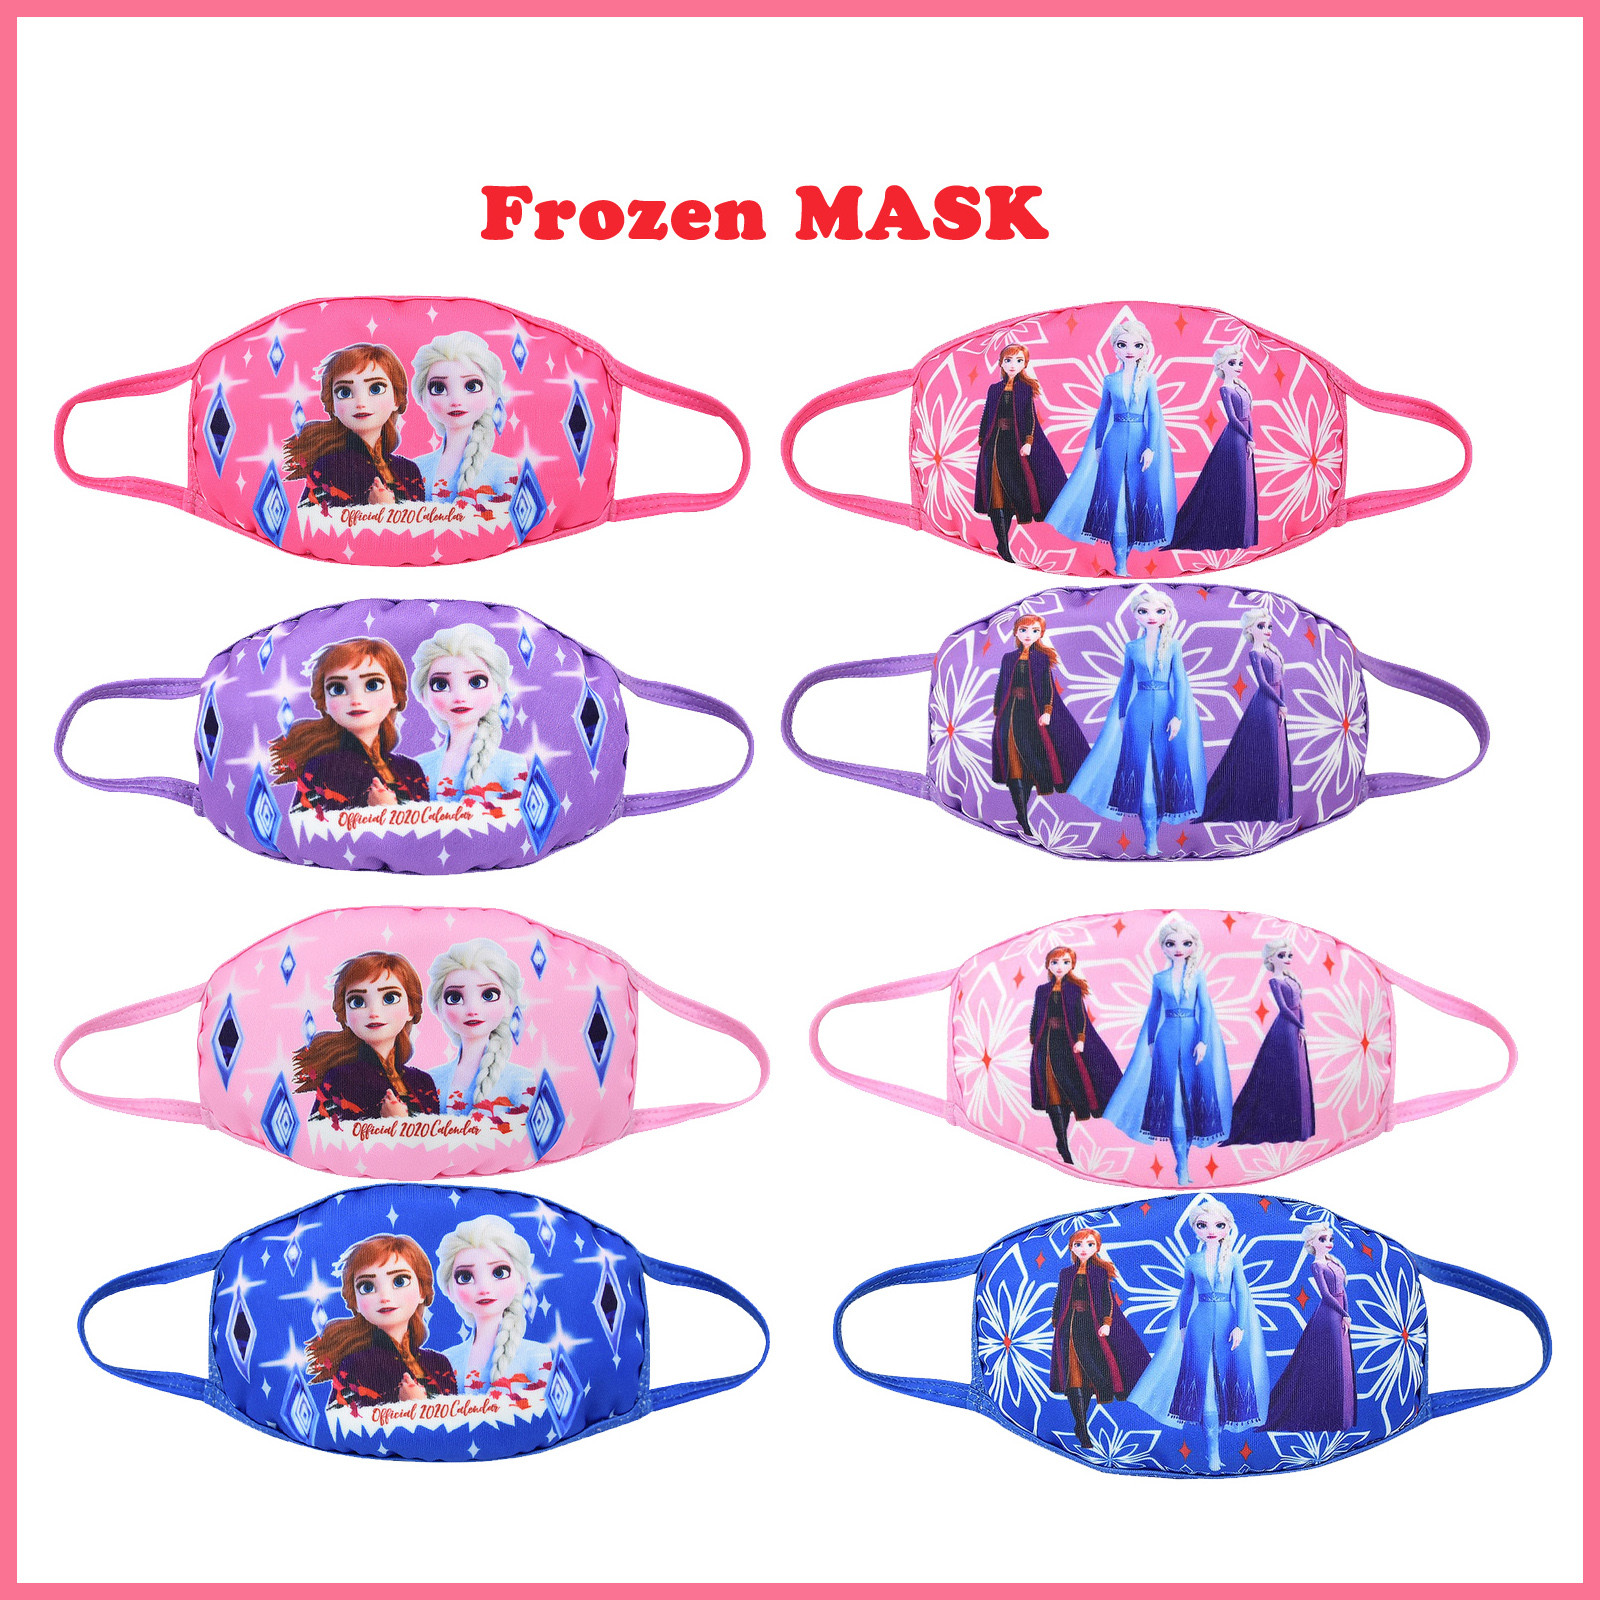 Original 2020 Frozen 2 Kids Cotton Masks Disney Princess Anna Elsa Anime Figures Face Mouth Protection Masks Gifts For Girls